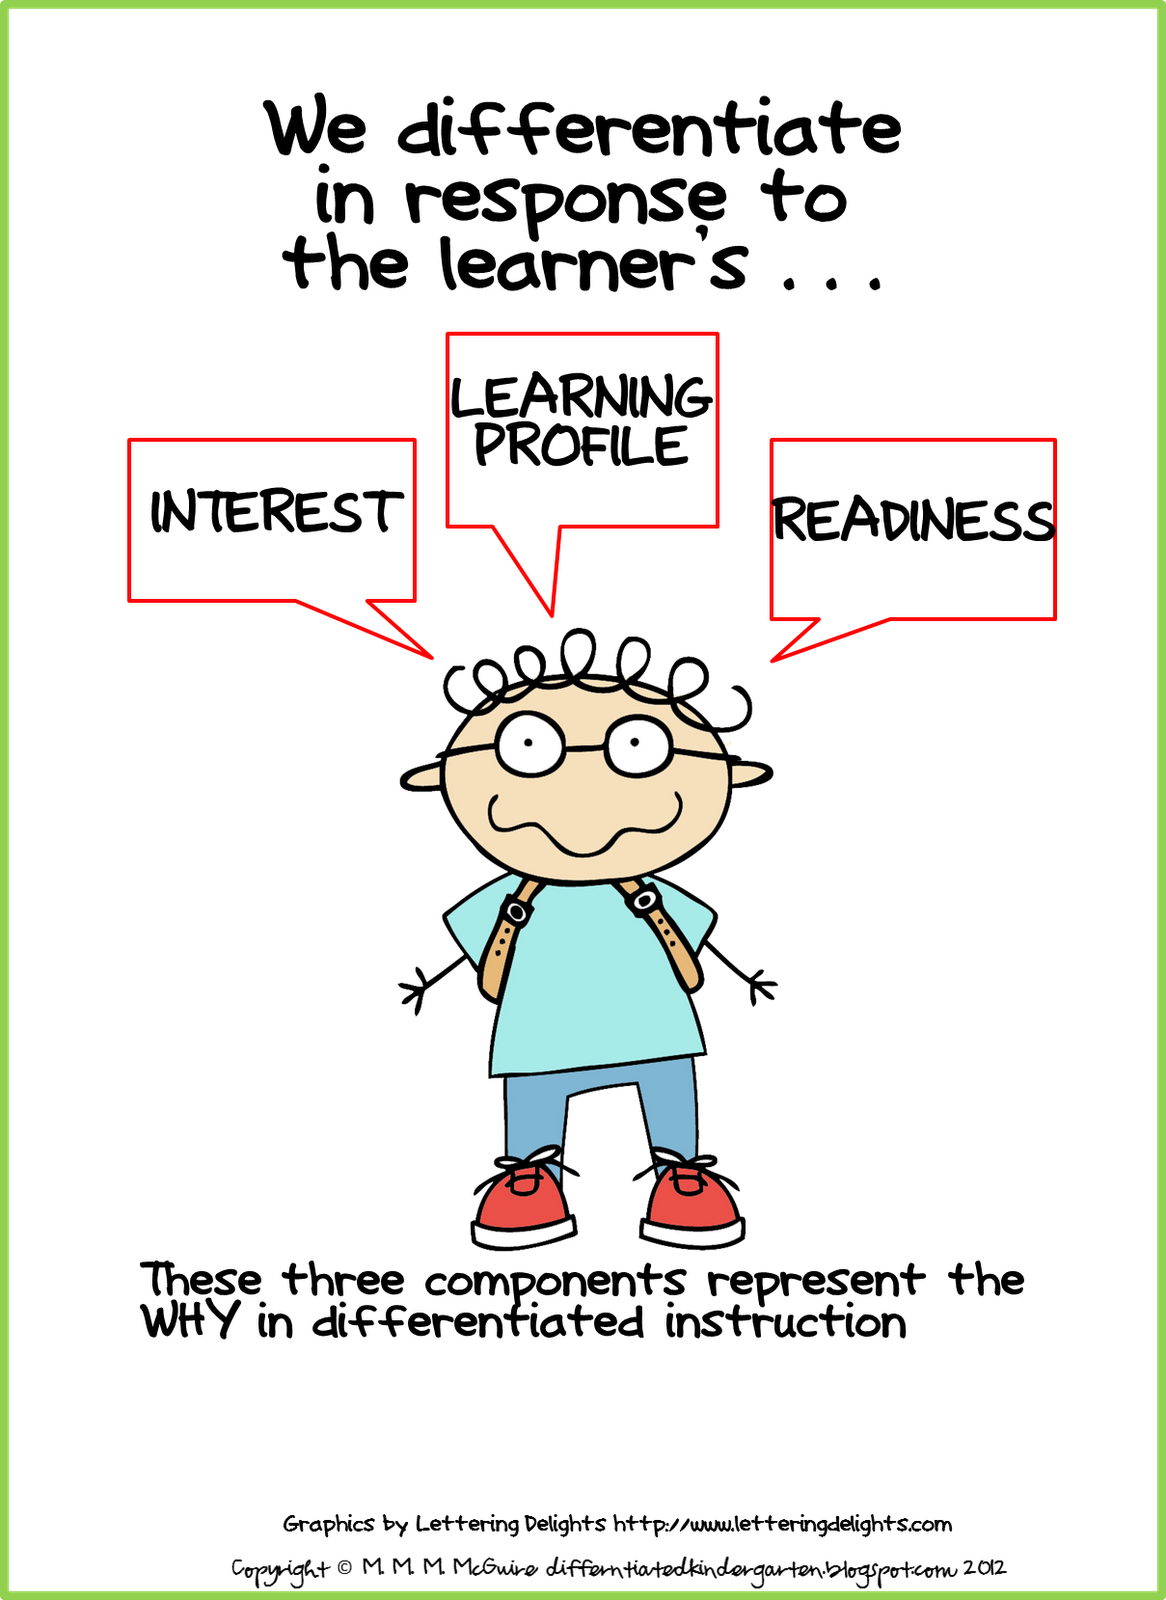 Proud clipart student interest. Reflections insights and realizations